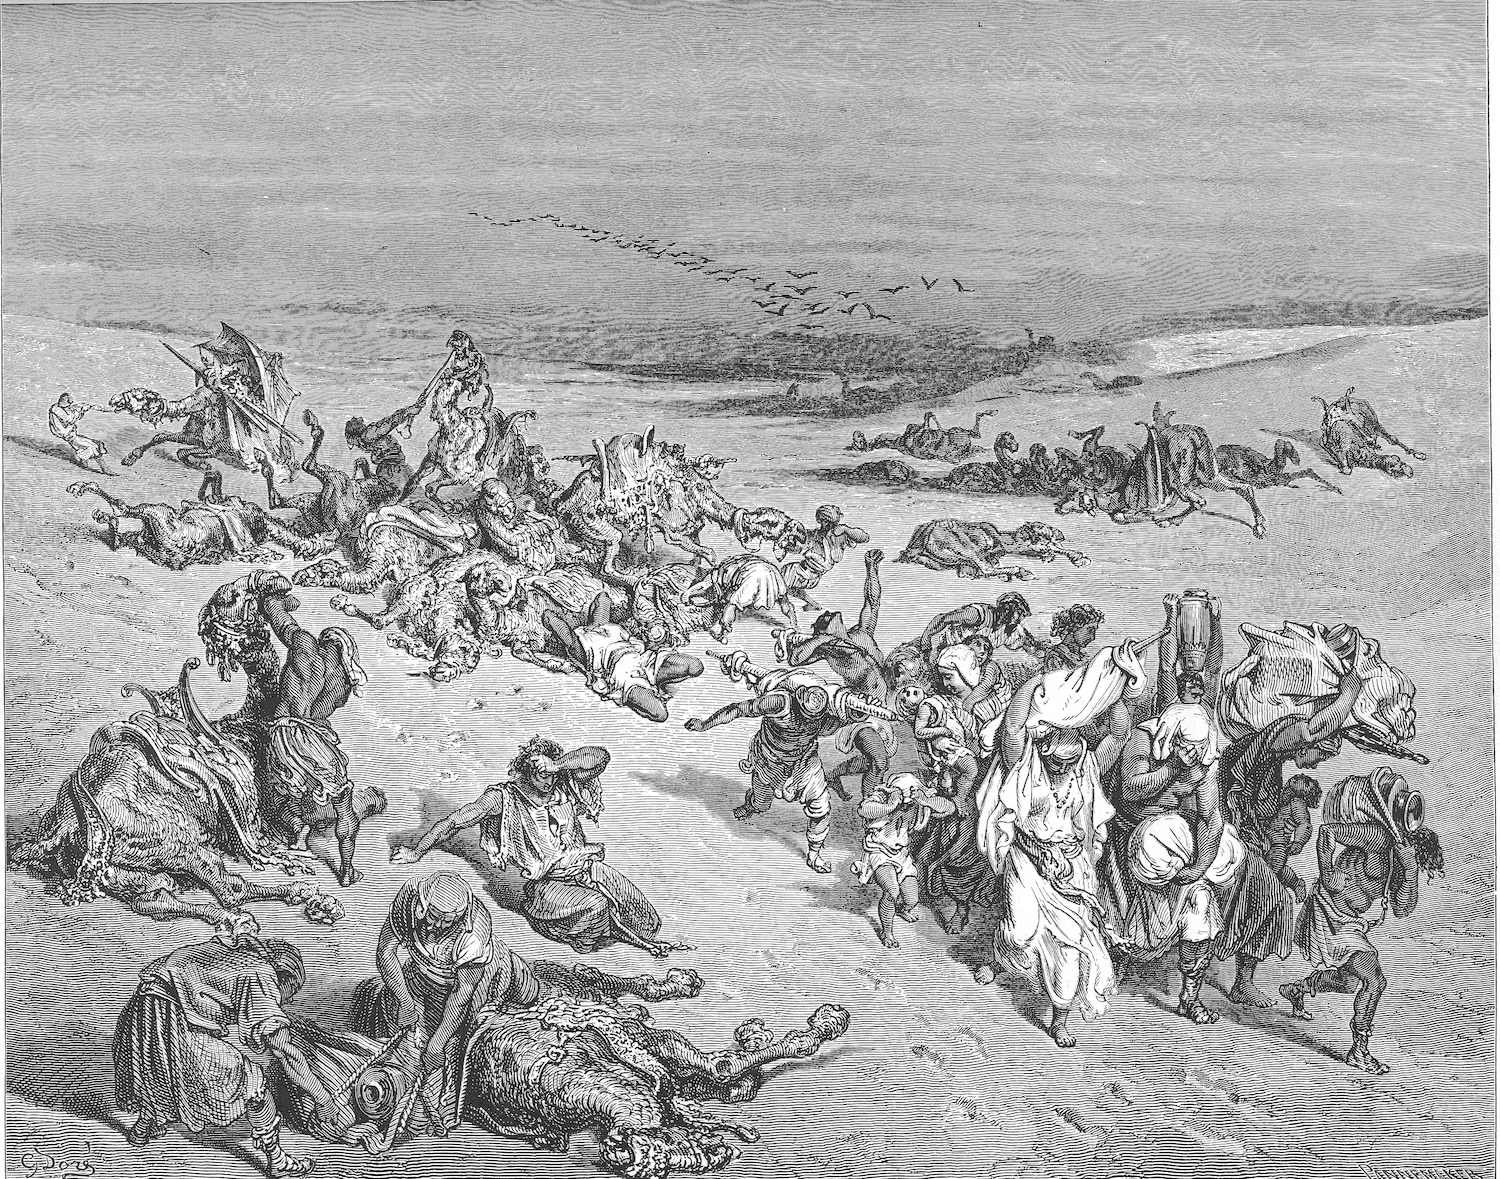 From the 19th-century French artist Gustave Doré's The Murrain of Beasts, a woodcut of the fifth plague visited by God upon Egypt.Wikipedia.